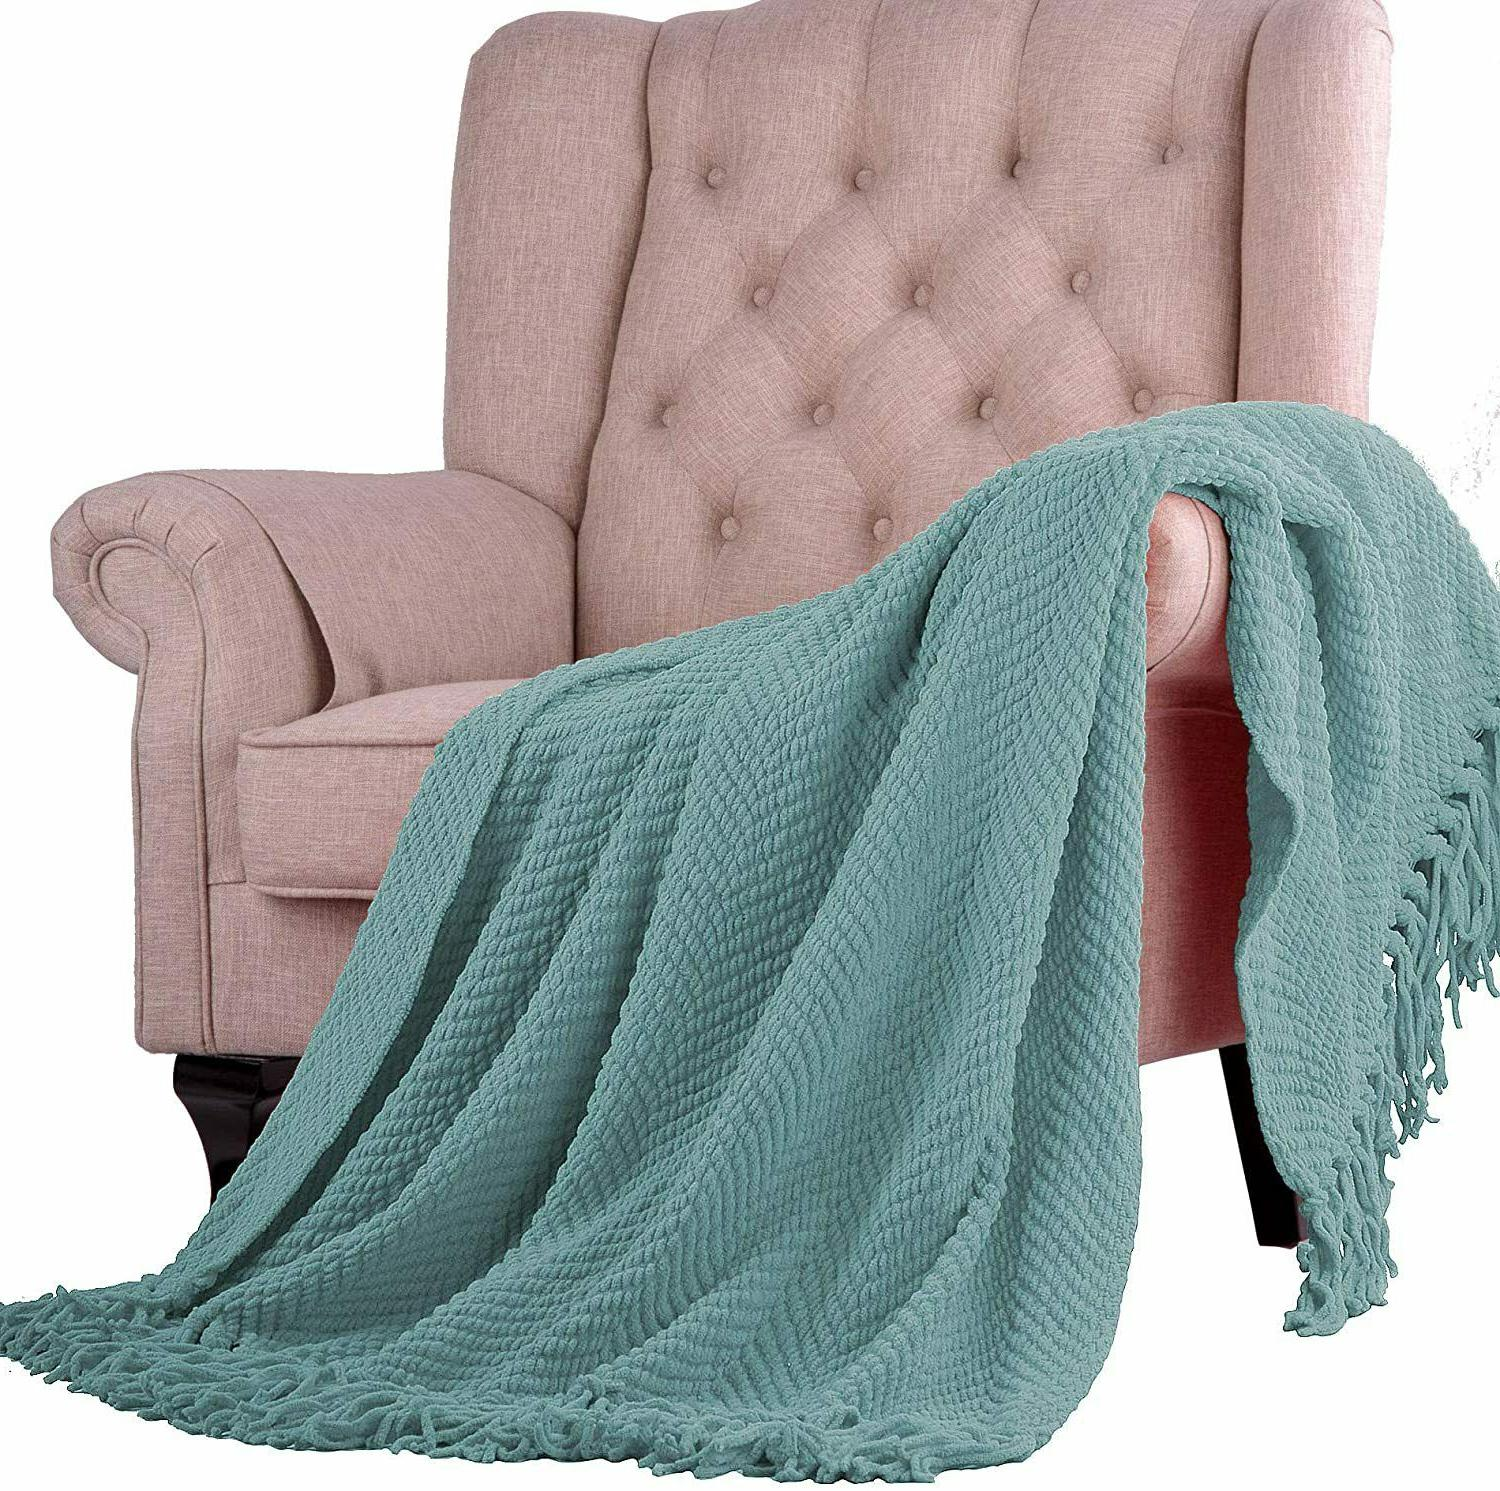 Knitted Tweed Throw Couch Cover Blanket, 50x60, Silver Blue